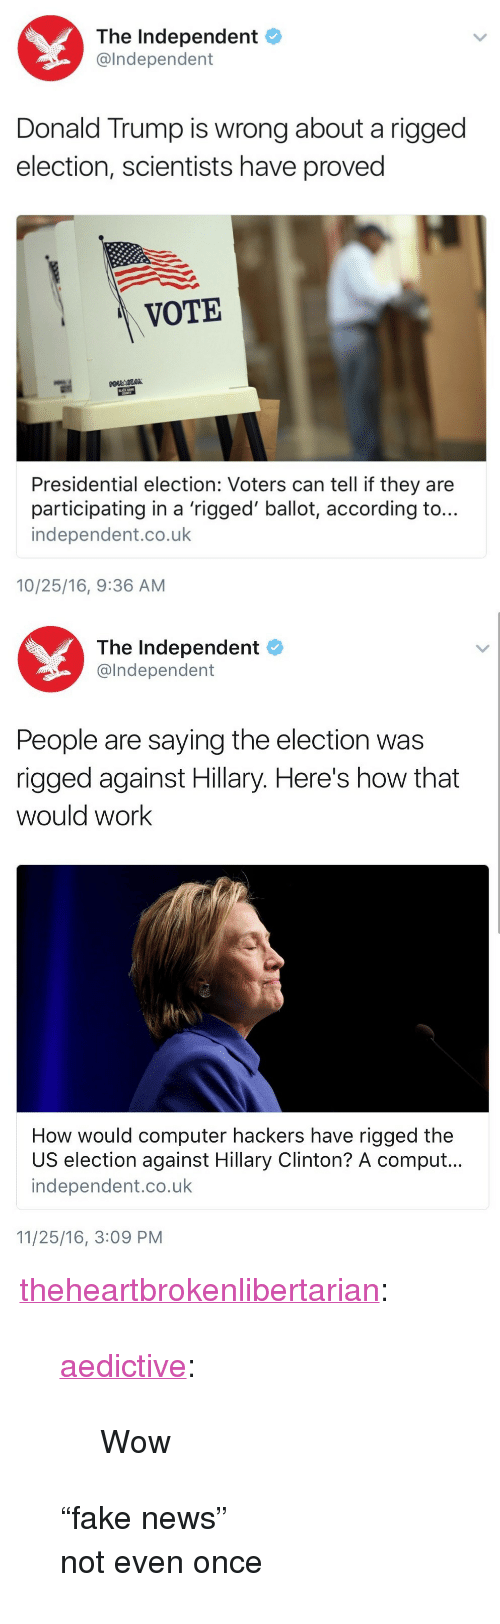 "Donald Trump, Hillary Clinton, and News: The Independent  @lndependent  Donald Trump is wrong about a rigged  election, scientists have proved  VOTE  Presidential election: Voters can tell if they are  participating in a 'rigged' ballot, according to...  independent.co.uk  10/25/16, 9:36 AM   The Independent  @lndependent  People are saying the election was  rigged against Hillary. Here's how that  would work  How would computer hackers have rigged the  US election against Hillary Clinton? A comput.  independent.co.uk  11/25/16, 3:09 PM <p><a href=""http://theheartbrokenlibertarian.tumblr.com/post/154519325596/aedictive-wow"" class=""tumblr_blog"">theheartbrokenlibertarian</a>:</p>  <blockquote><p><a href=""http://aedictive.tumblr.com/post/153657254861/wow"" class=""tumblr_blog"">aedictive</a>:</p><blockquote><p>Wow<br/></p></blockquote>  <p>""fake news""</p><p>not even once</p></blockquote>"